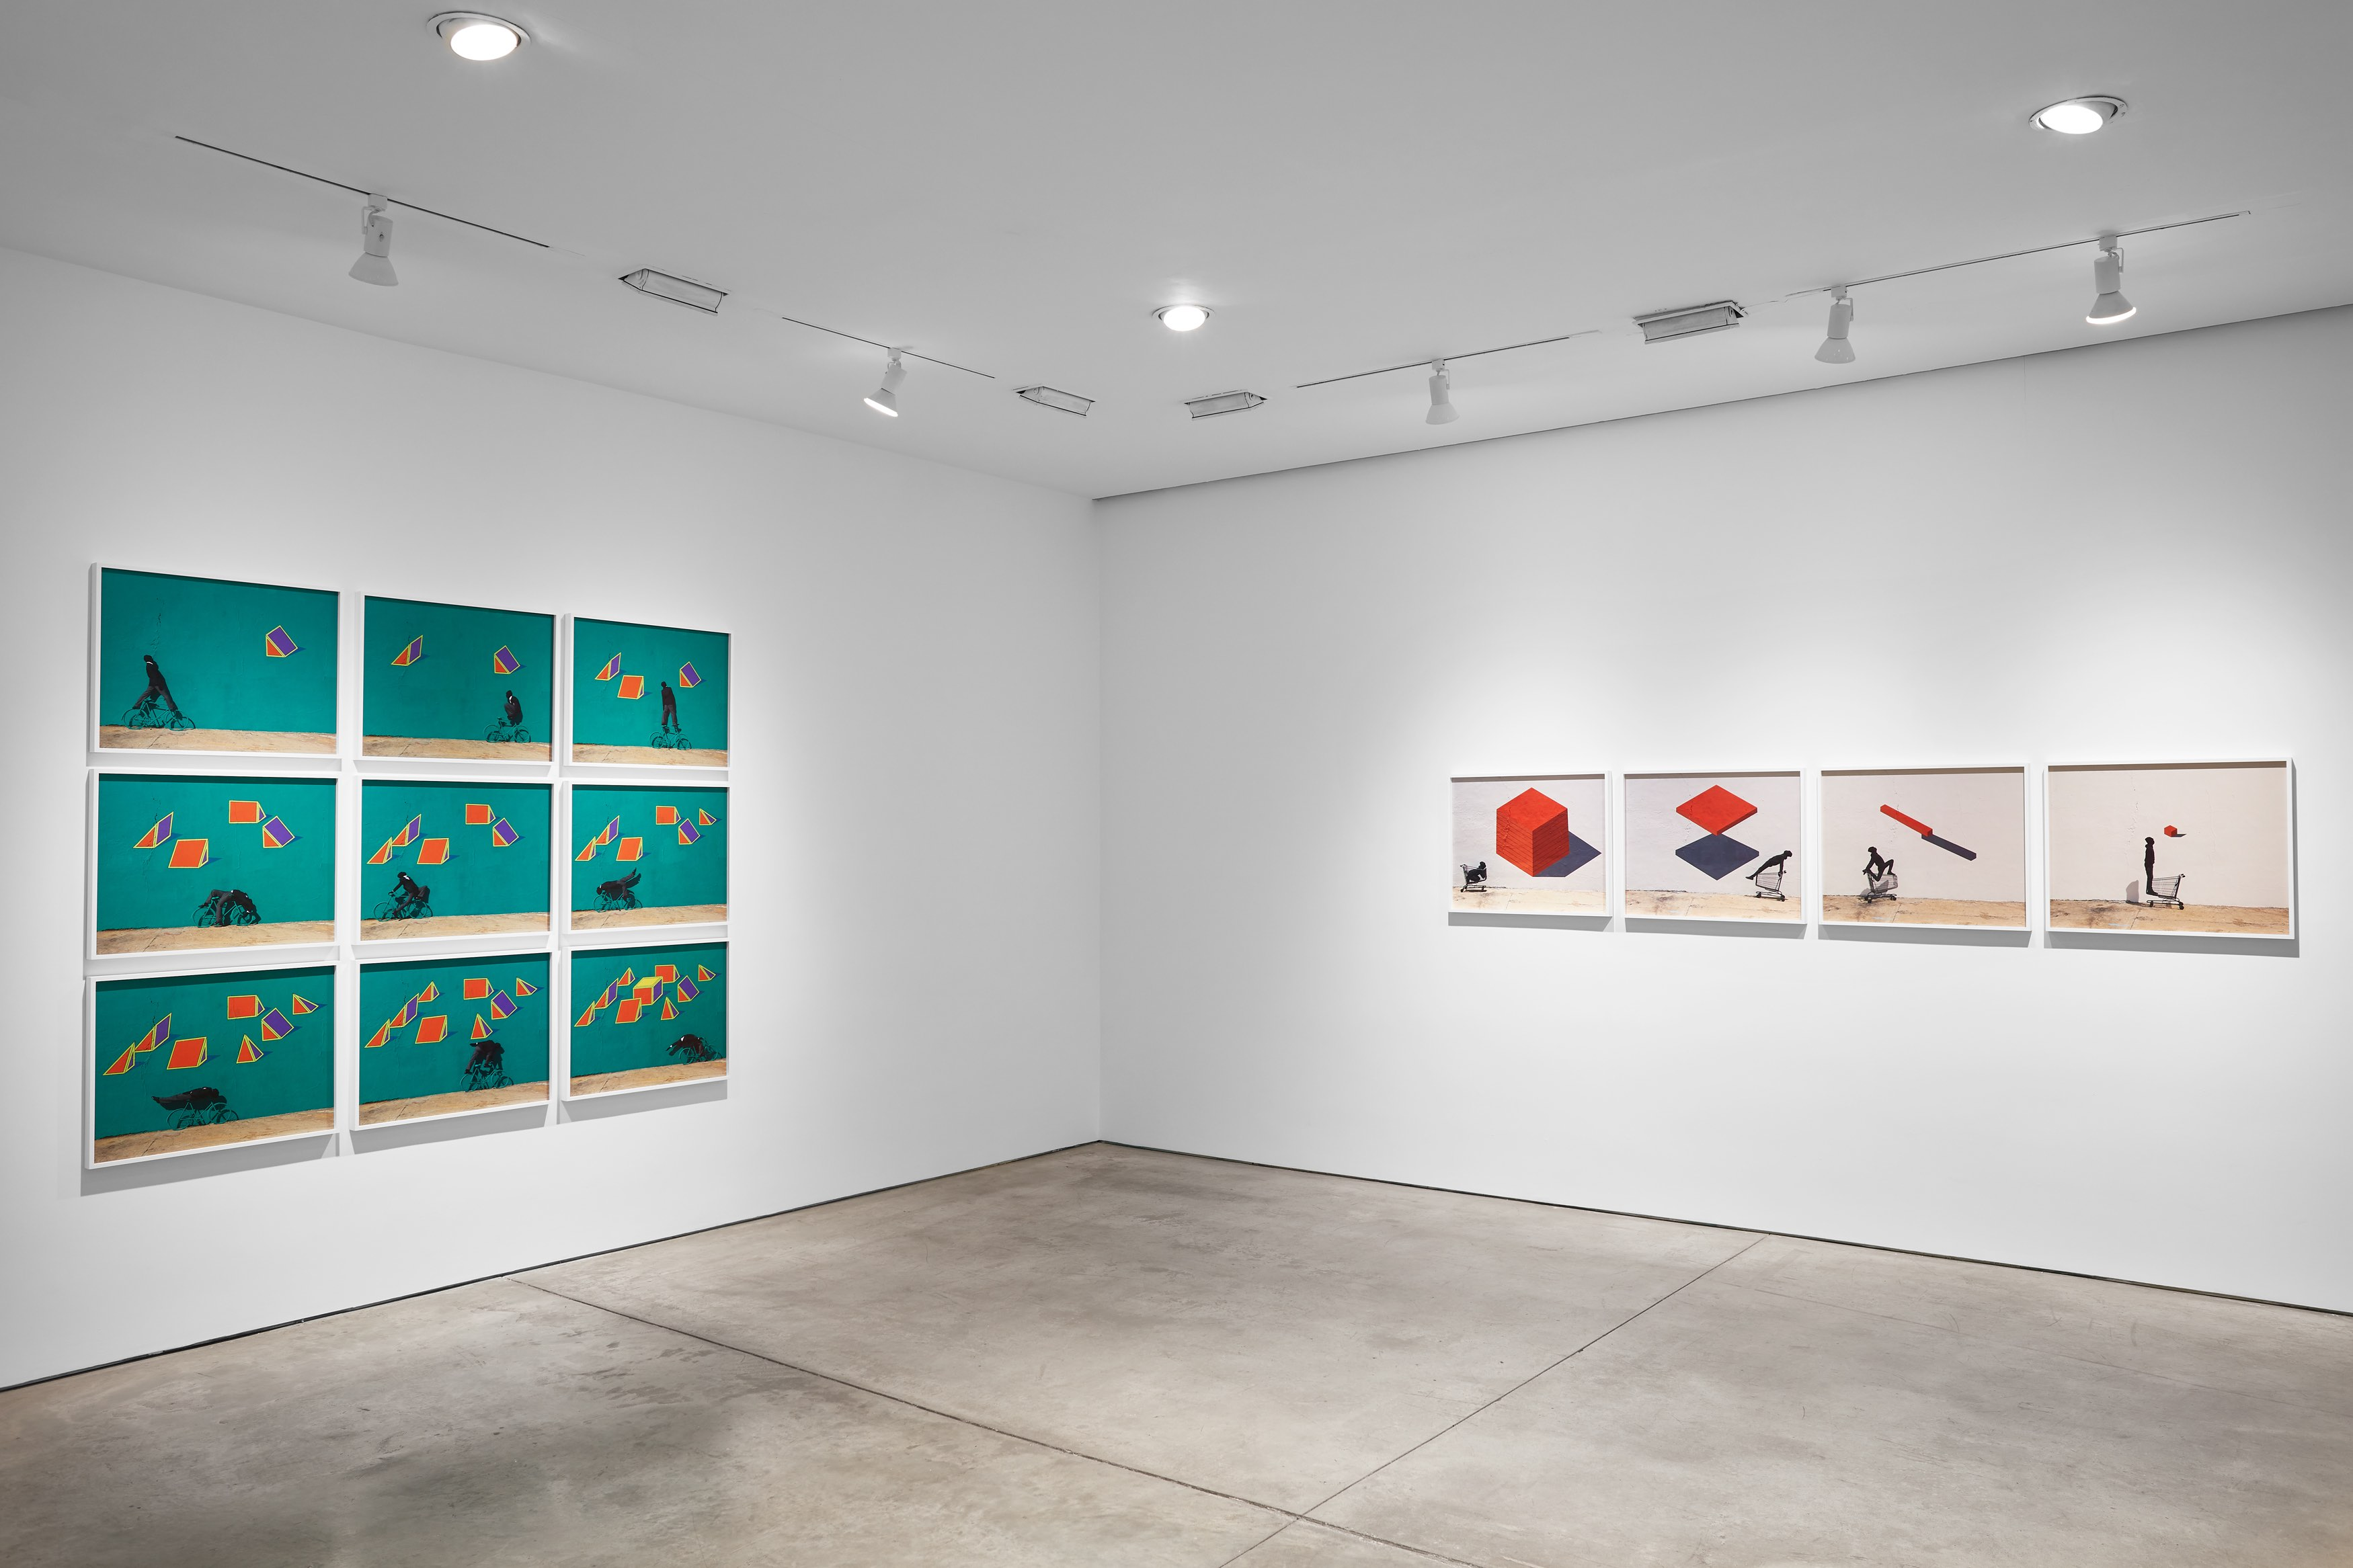 Robin Rhode, The Geometry of Colour Installation view, Lehmann Maupin, New York January 18 - February 24, 2018 Photo: Matthew Herrmann. Courtesy the artist and Lehmann Maupin, New York and Hong Kong.